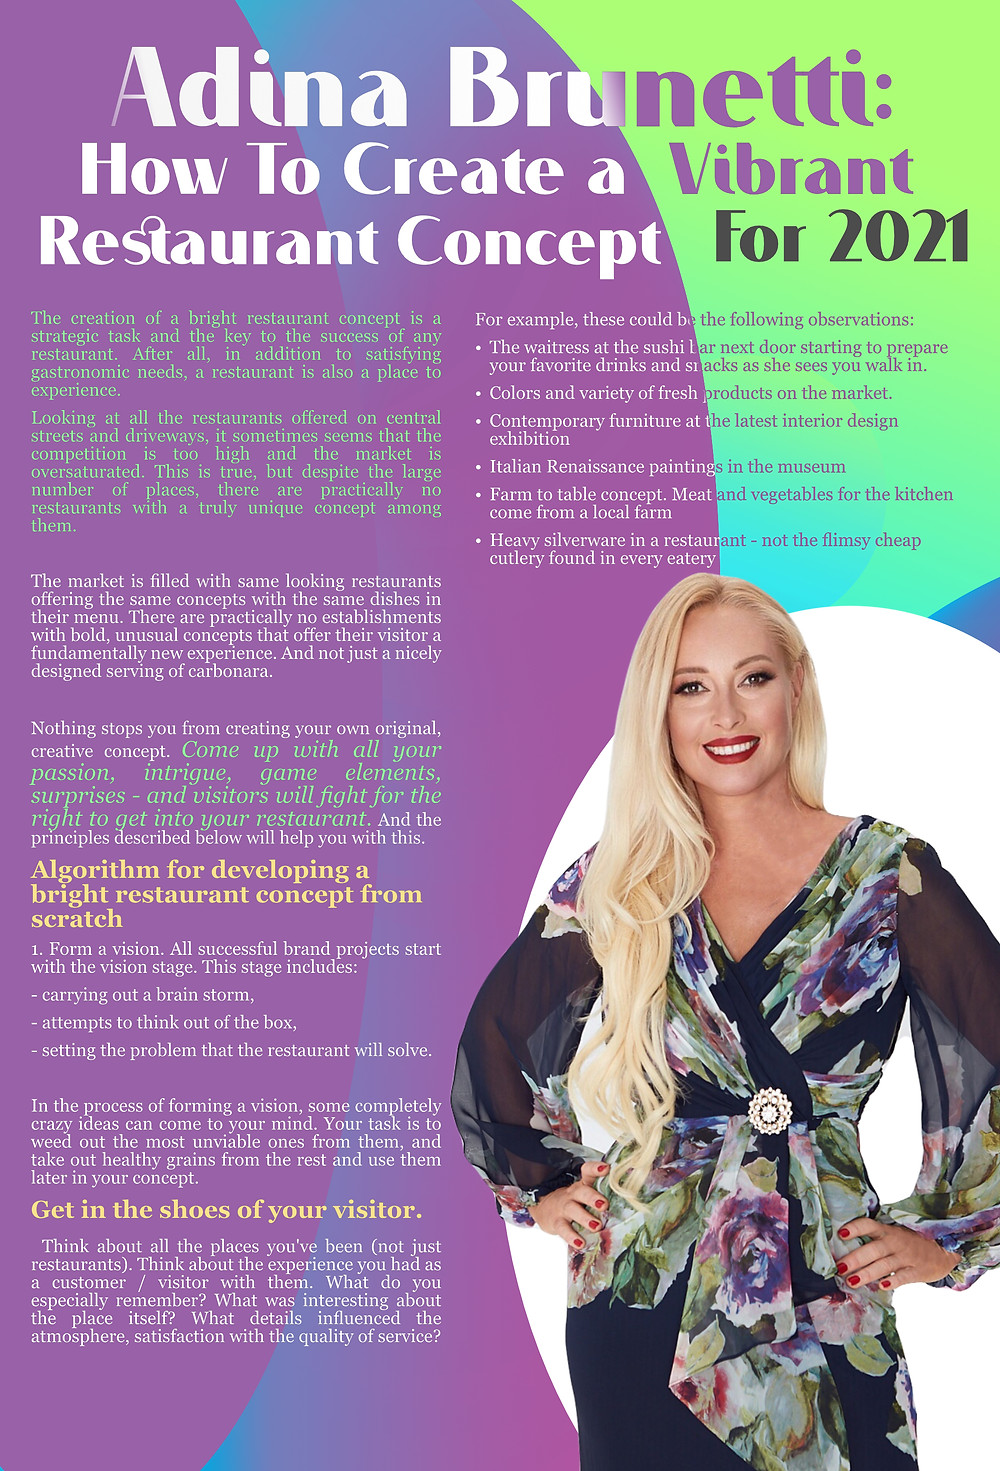 Adina Brunetti: How To Create a  Vibrant Restaurant Concept for 2021